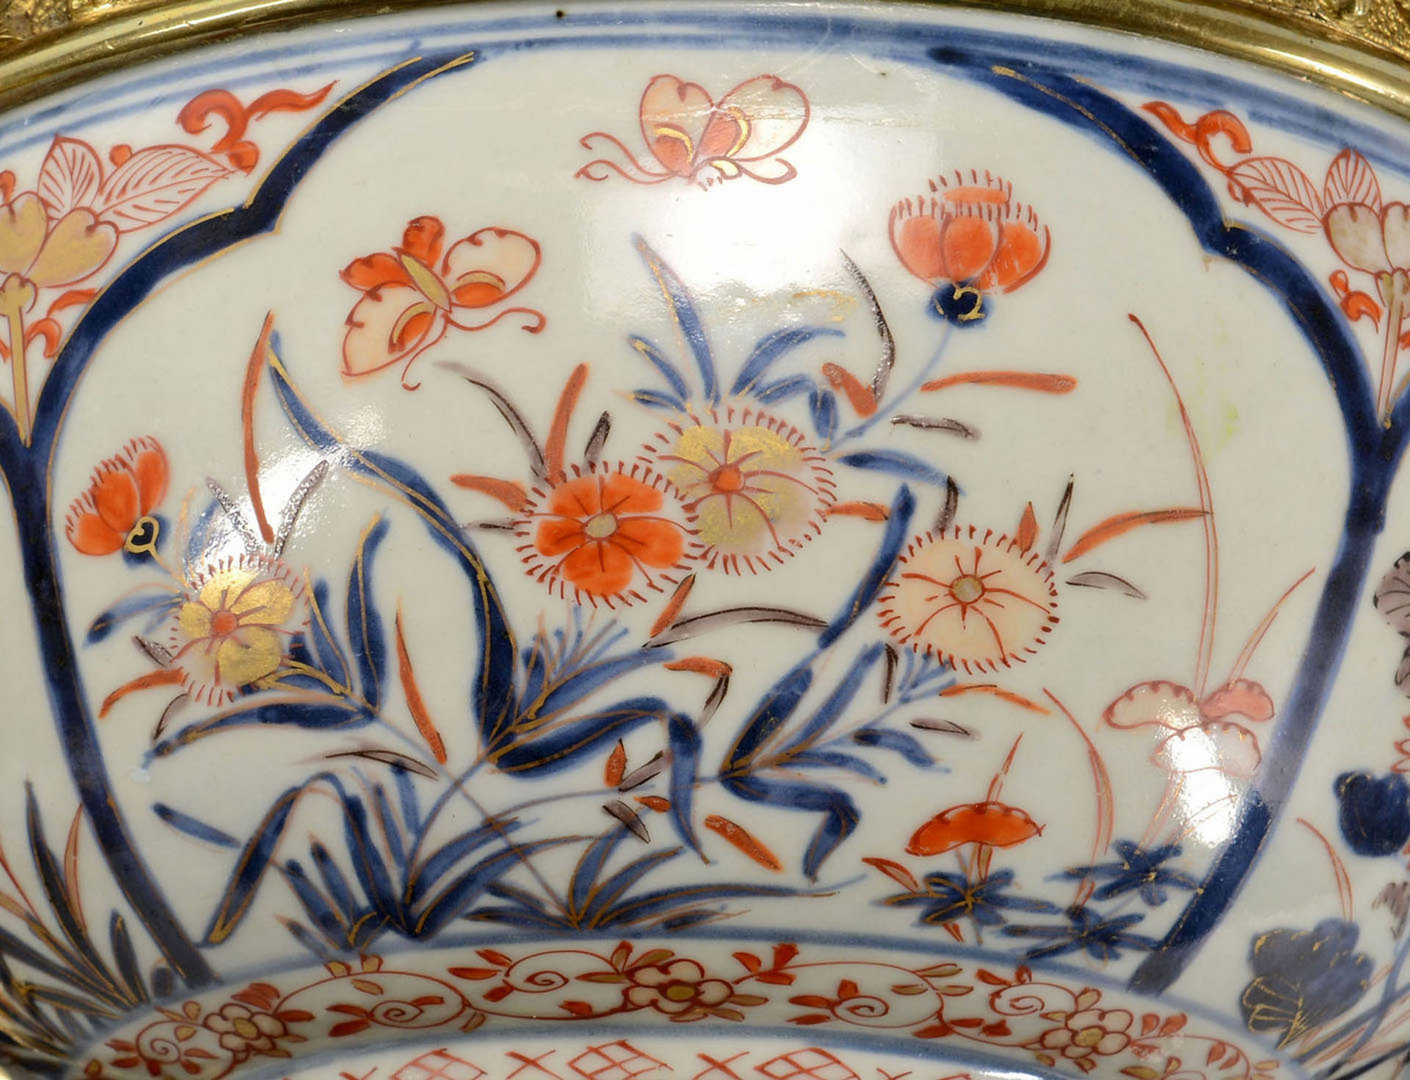 Lot 13: Bronze Mounted Imari Porcelain Bowl